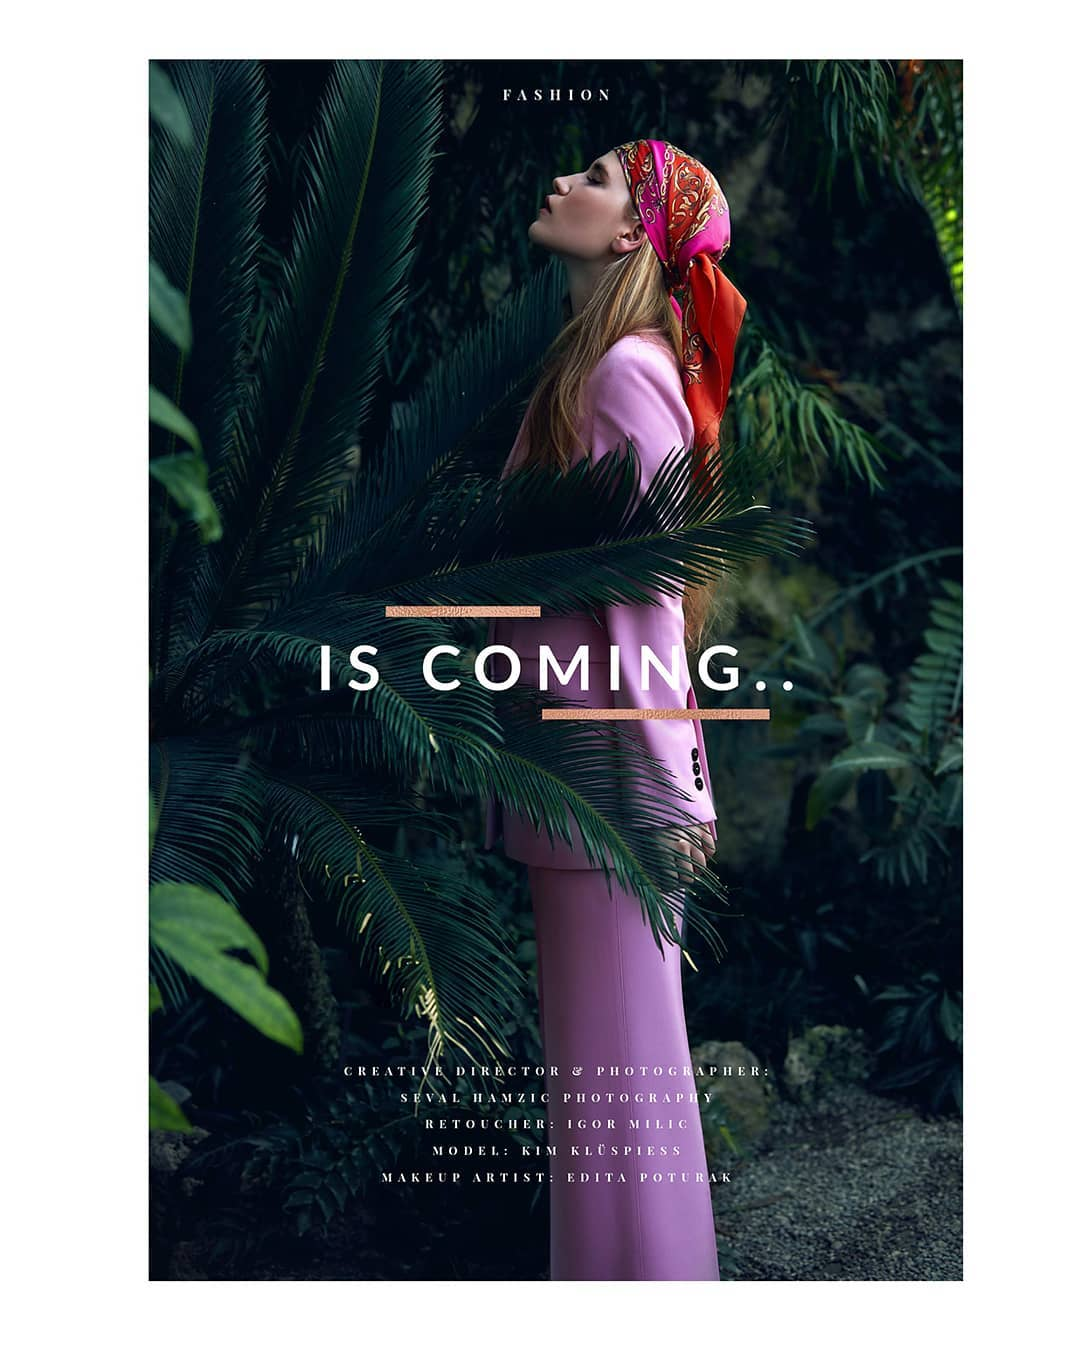 tropic shooting fashionphotography magazines outnow